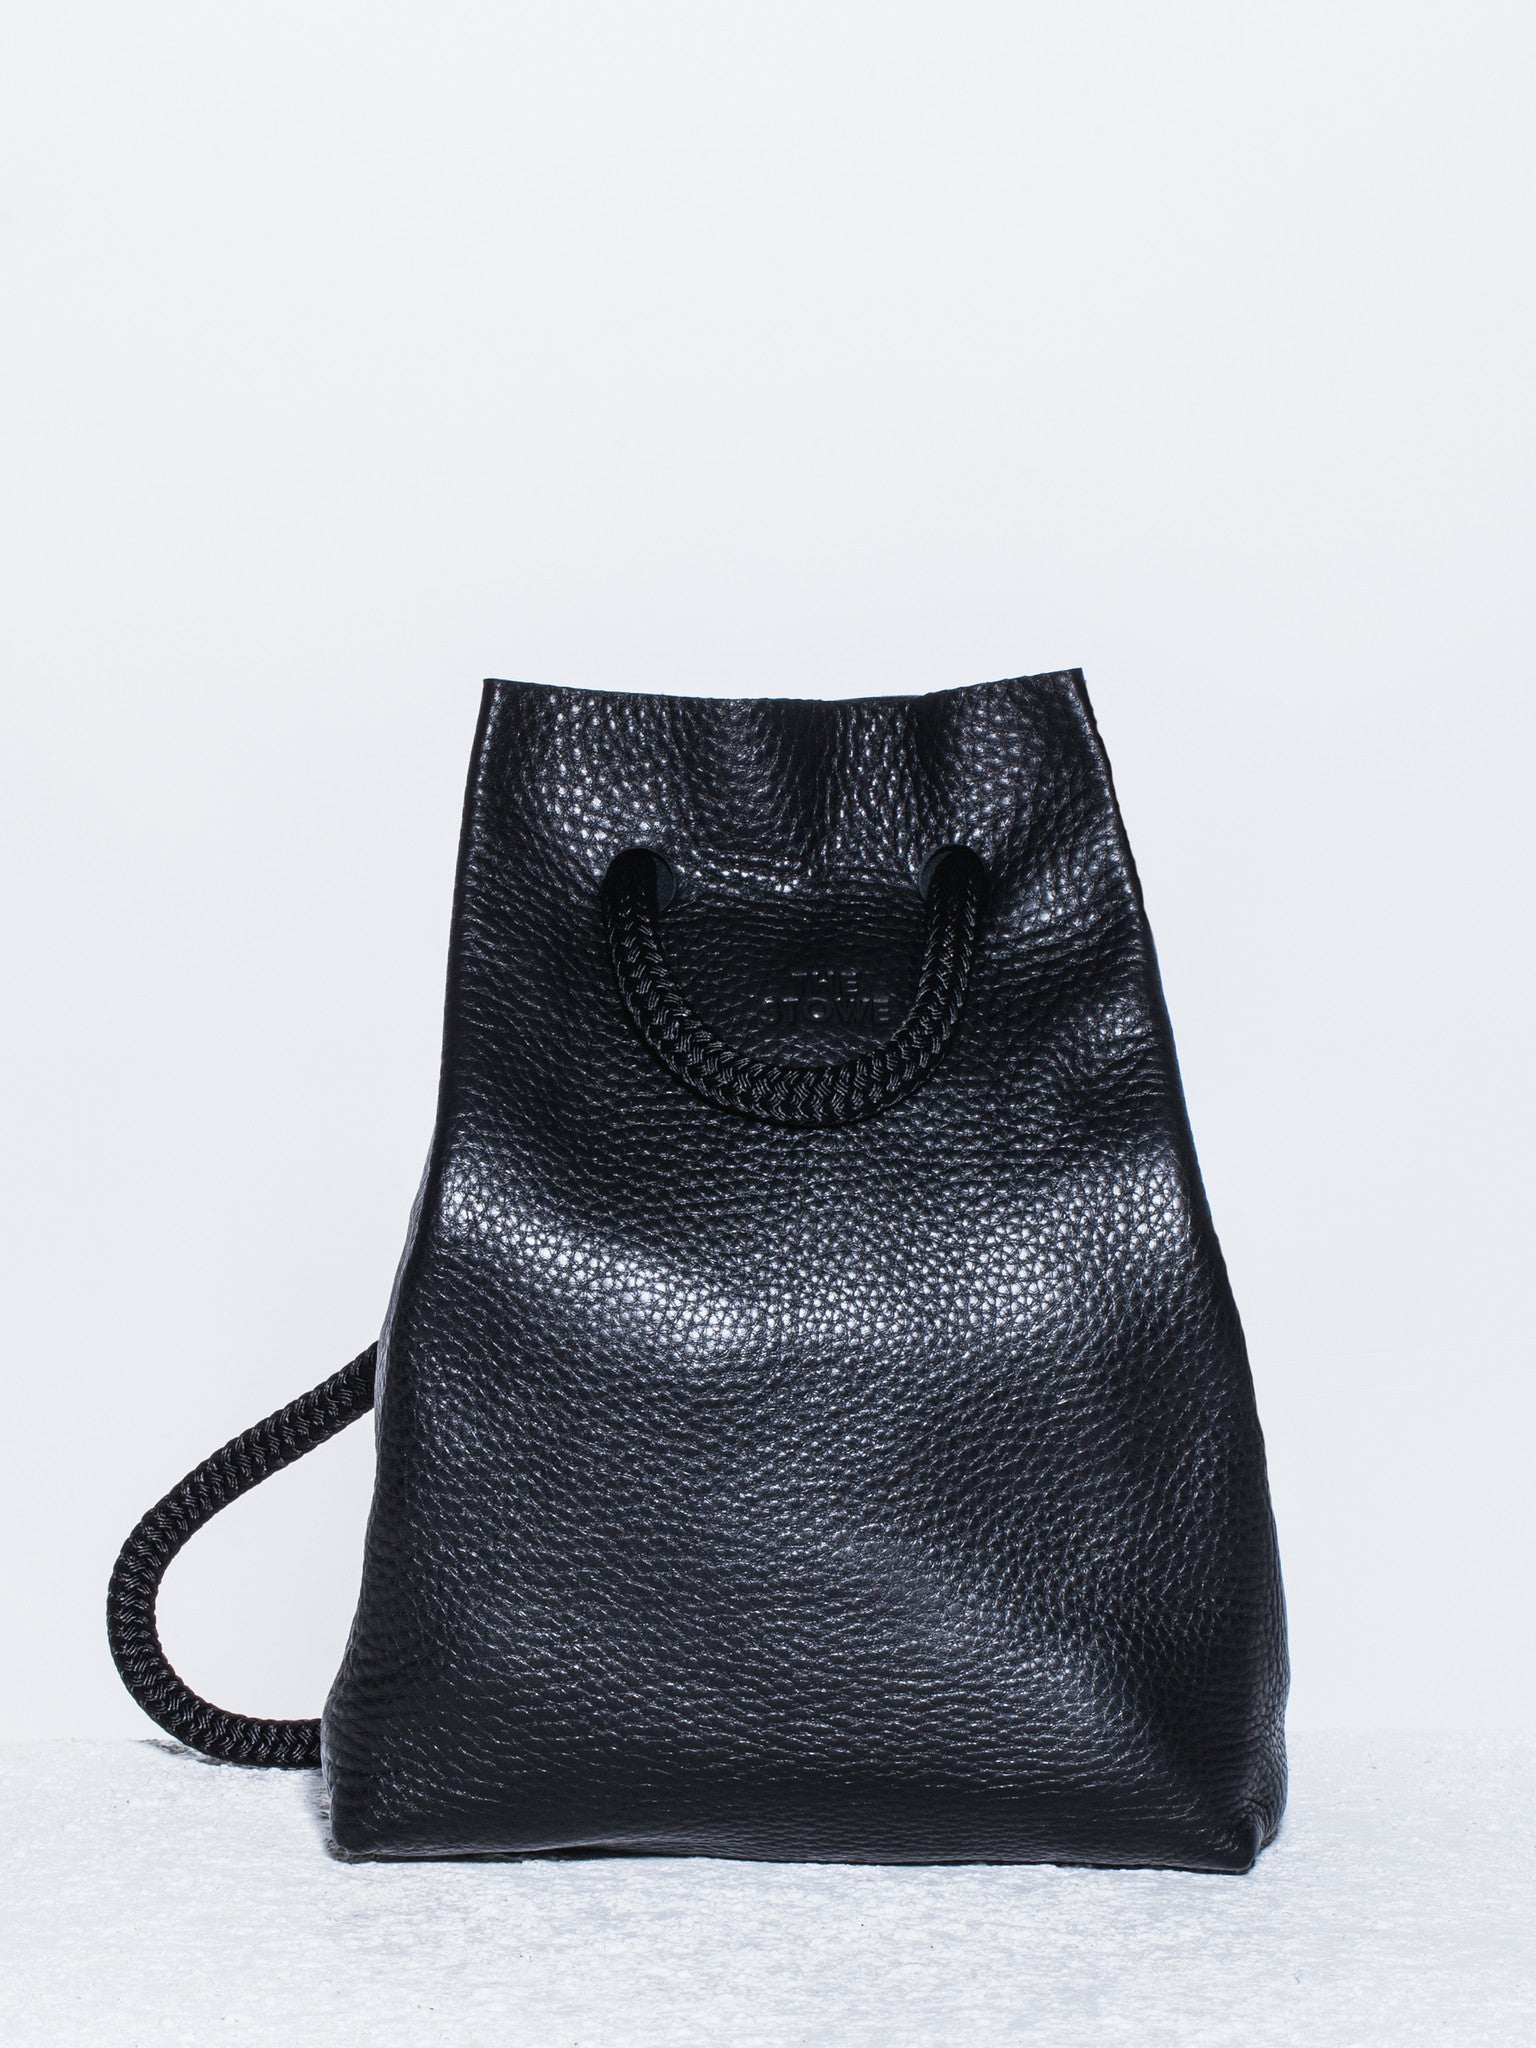 The Stowe Francis Backpack Pebbled Leather Front